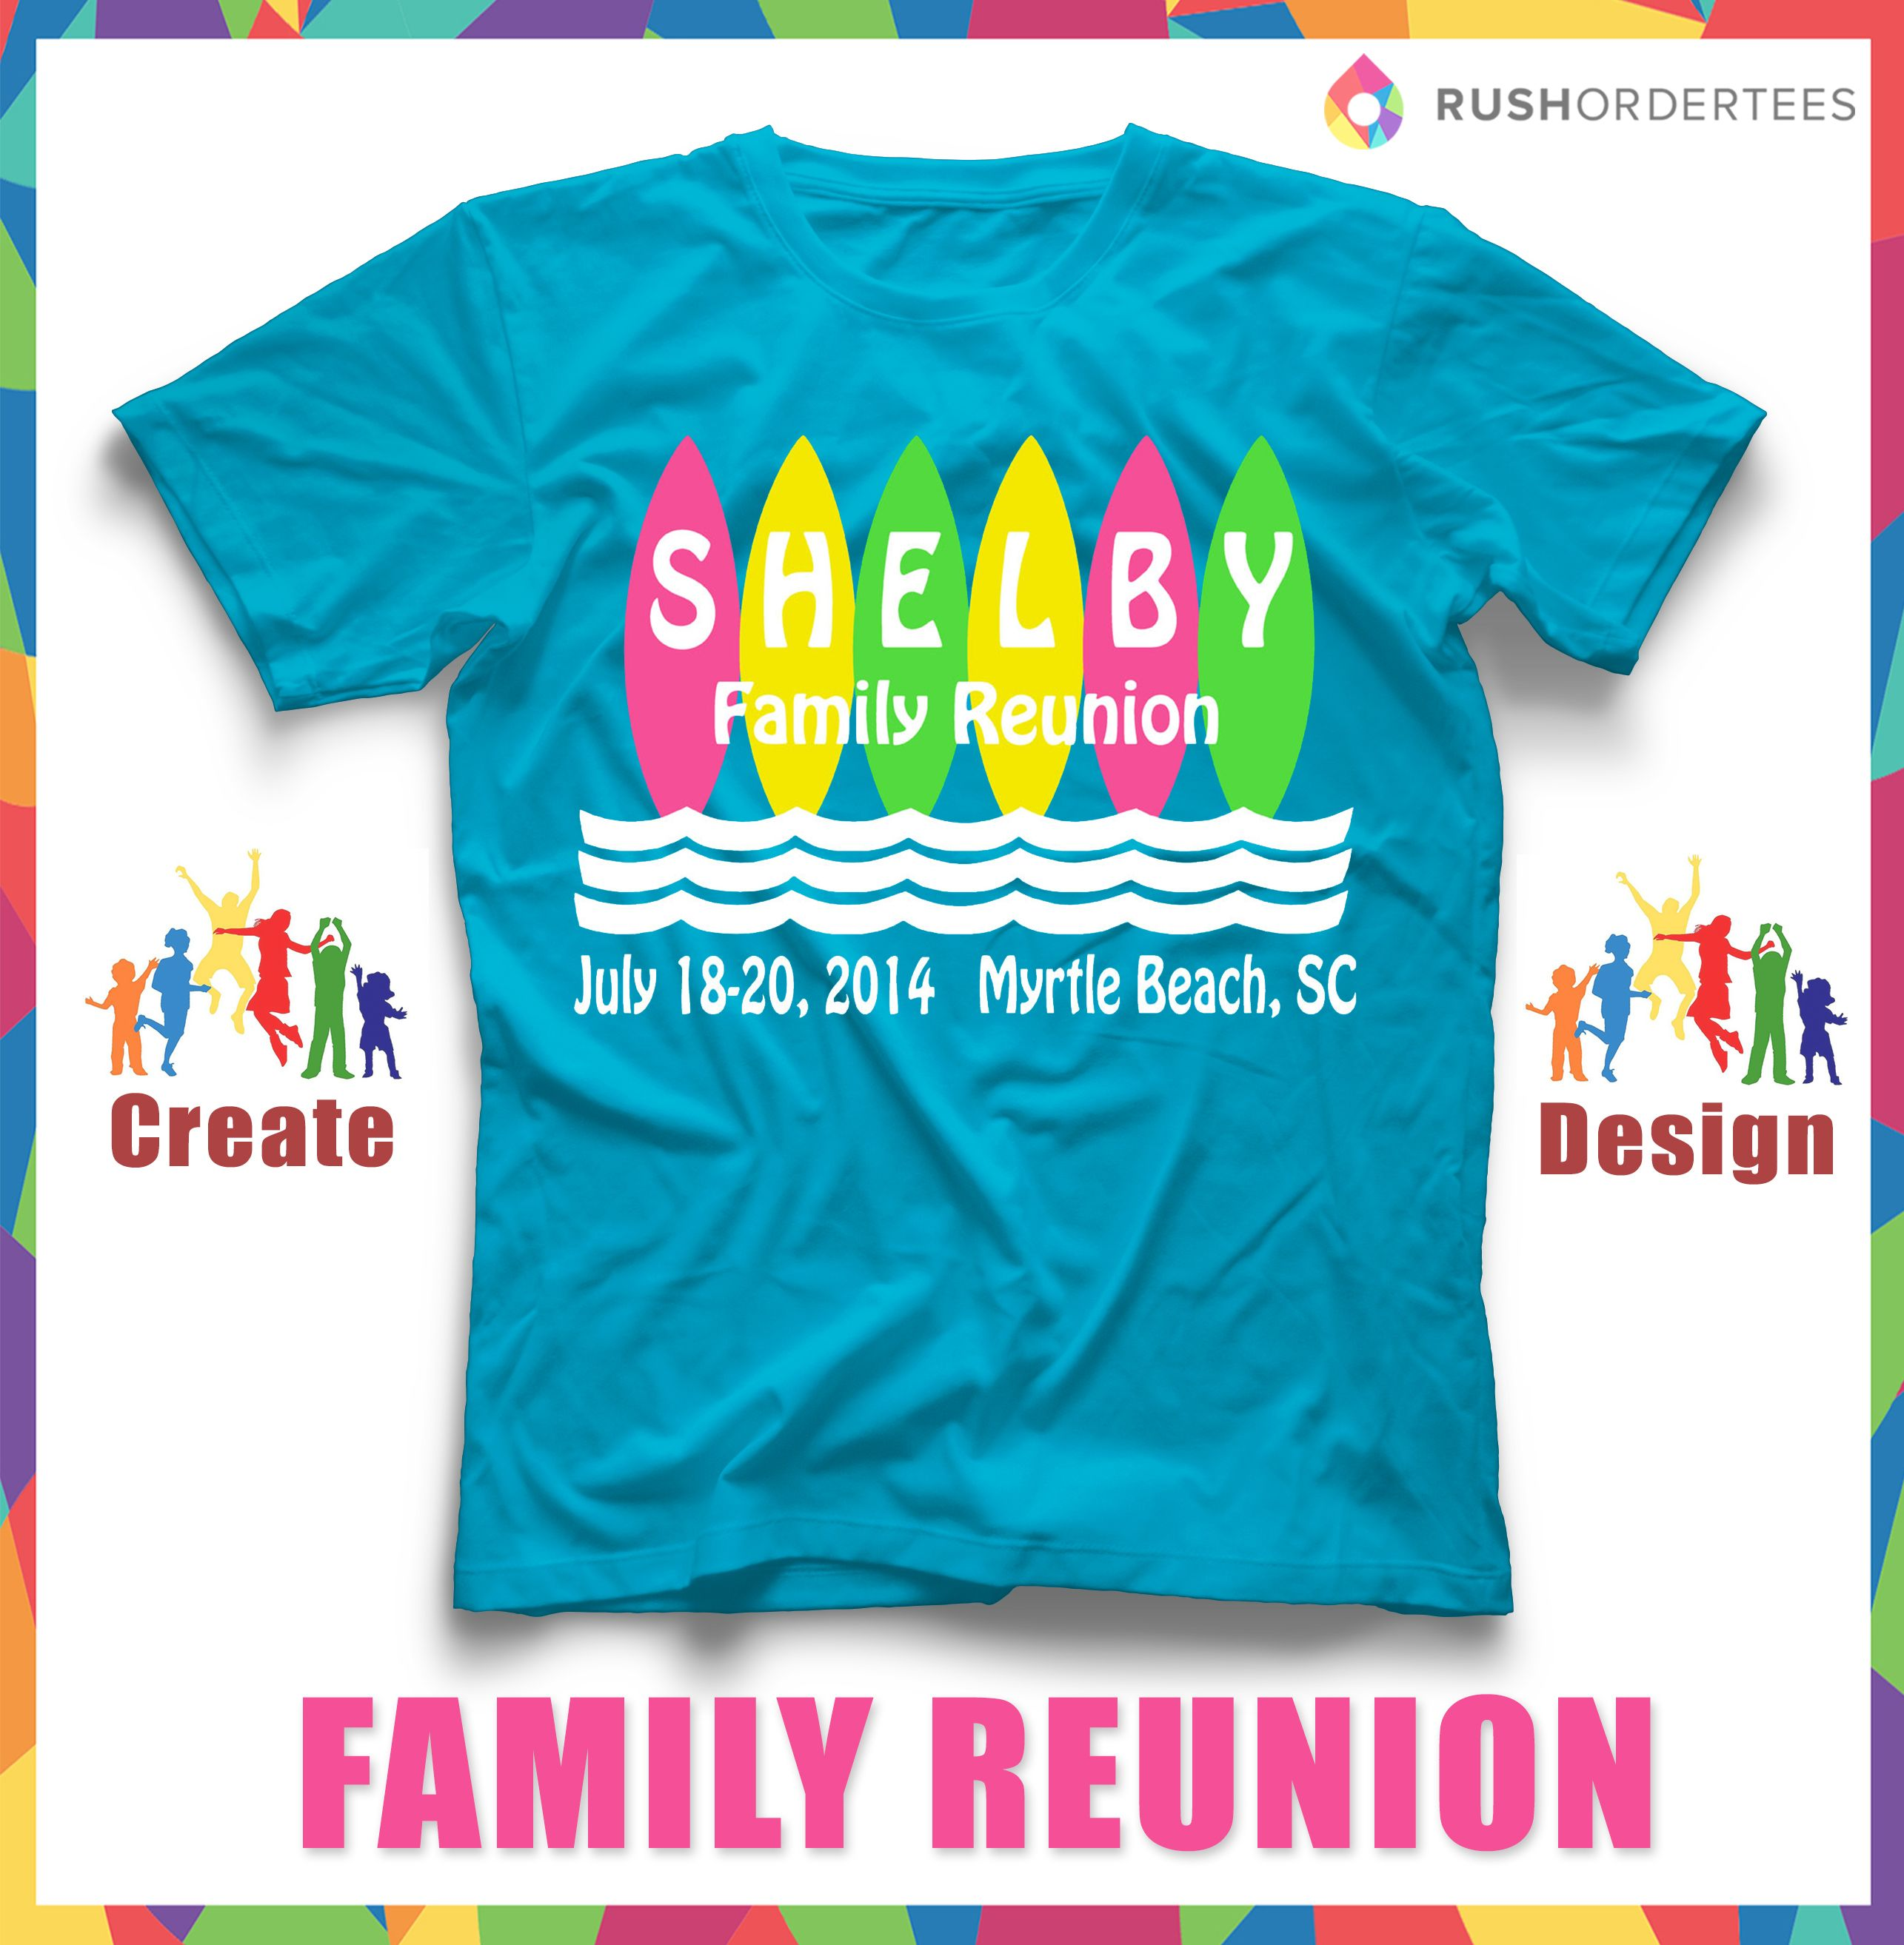 Design t shirt games online - Craft